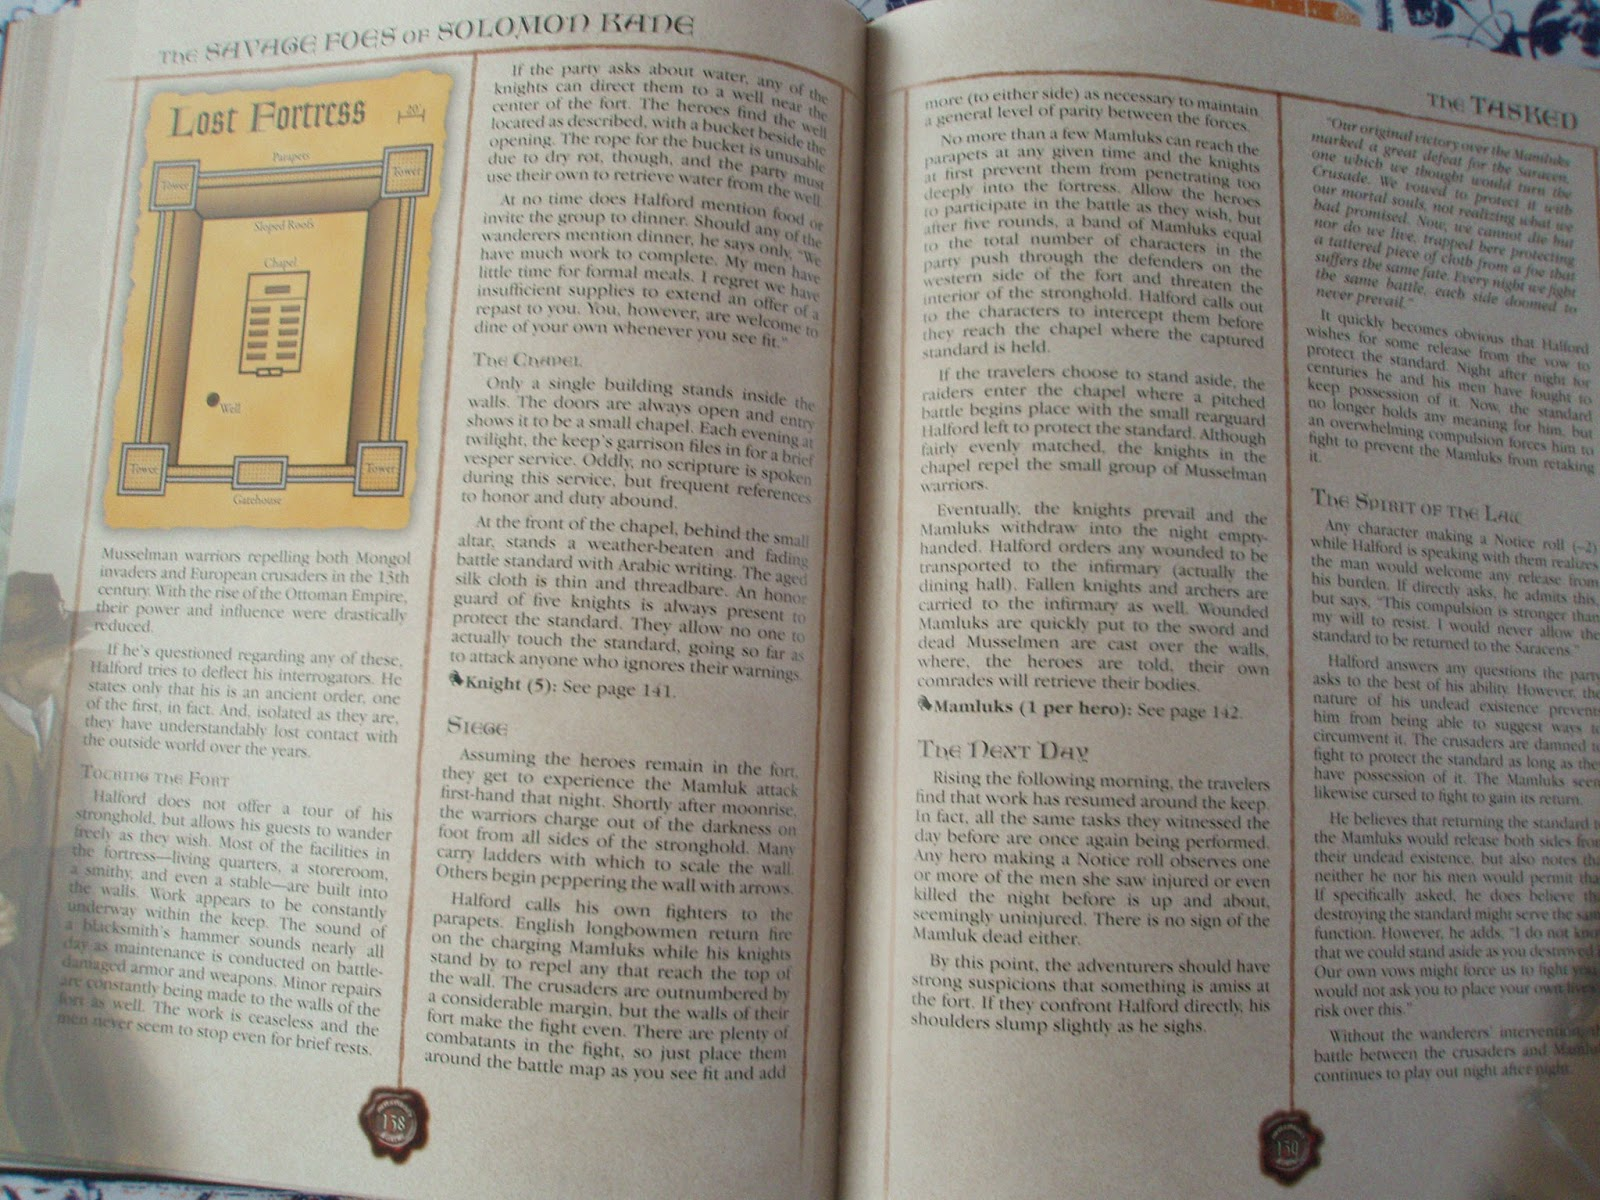 Paginas De Los Libros De Harry Potter Aventuras Extraordinarias Sistemas De Juego The Savage